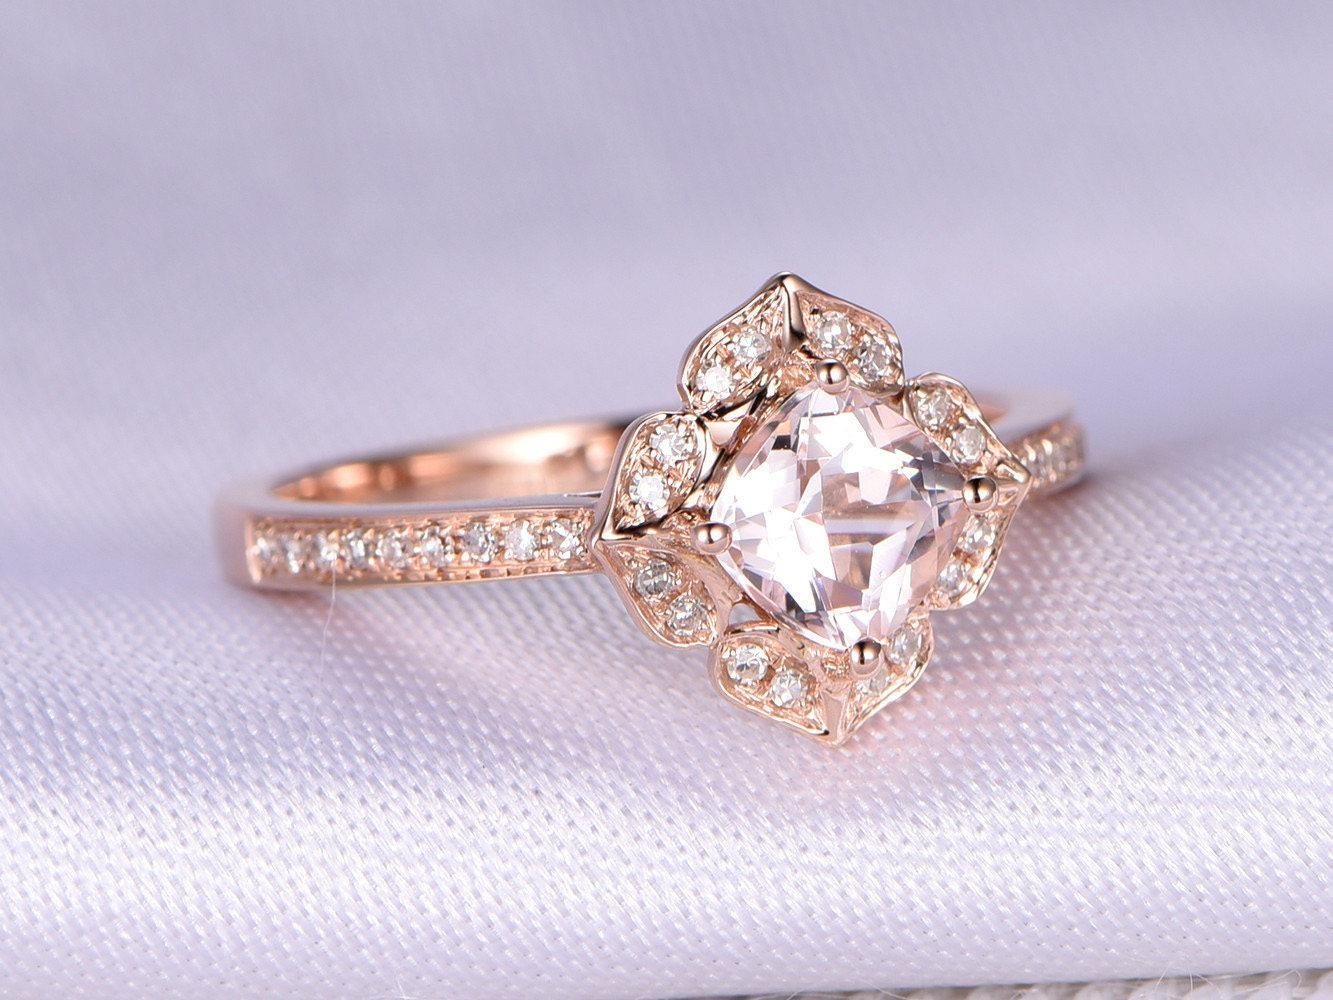 engagement rings under 500 | diamond engagement rings under $500